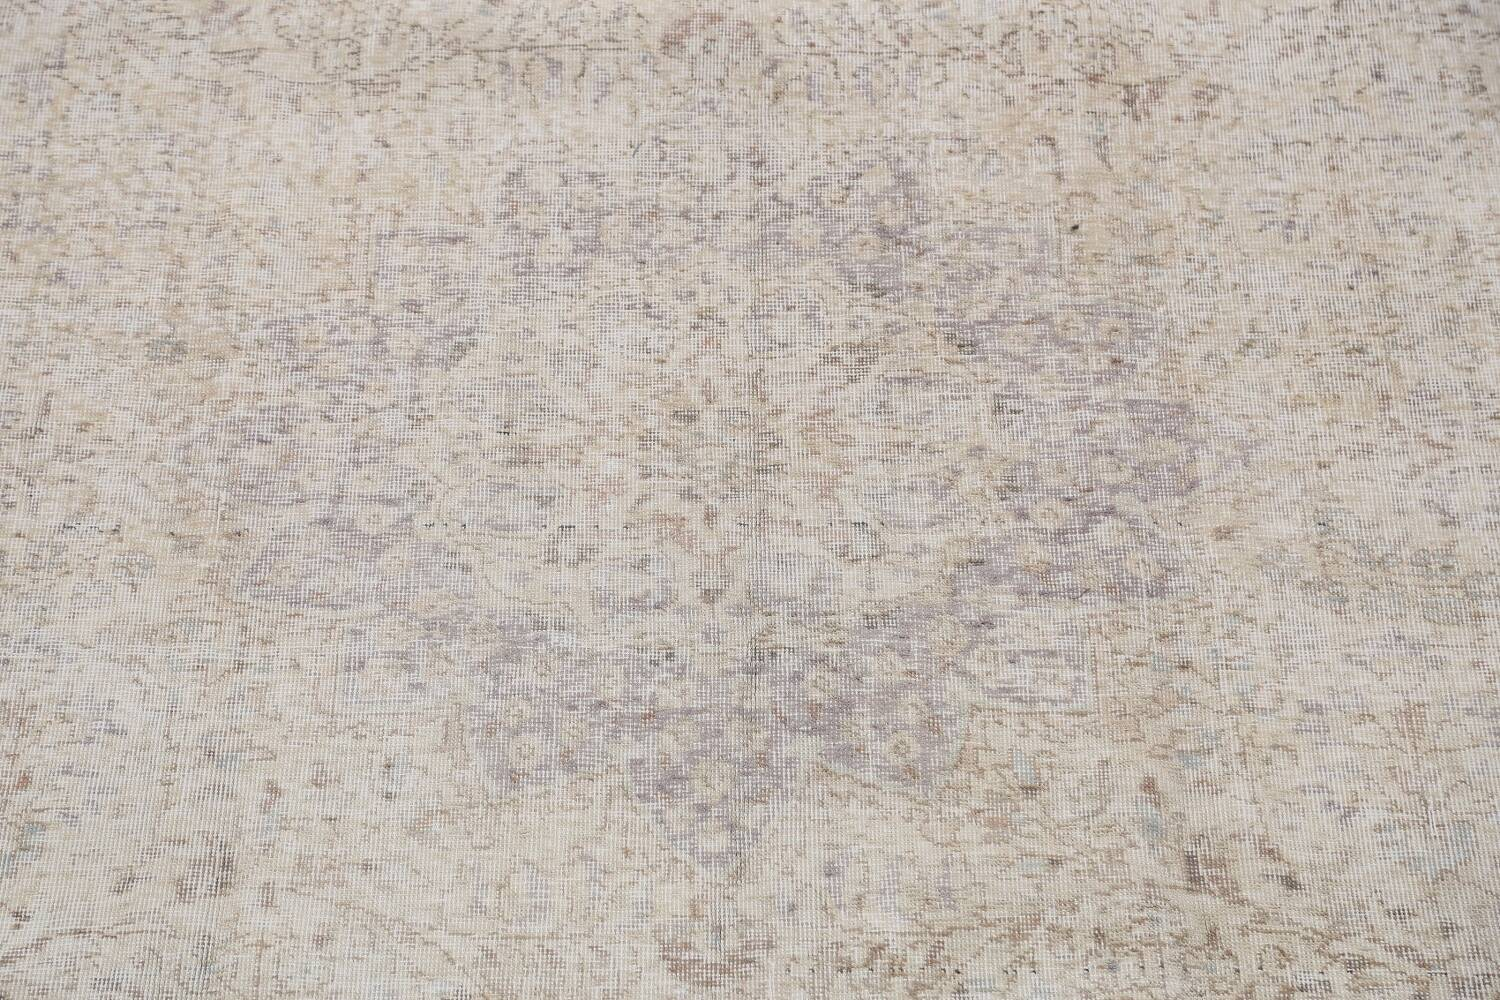 Muted Distressed Tabriz Persian Area Rug 8x11 image 4